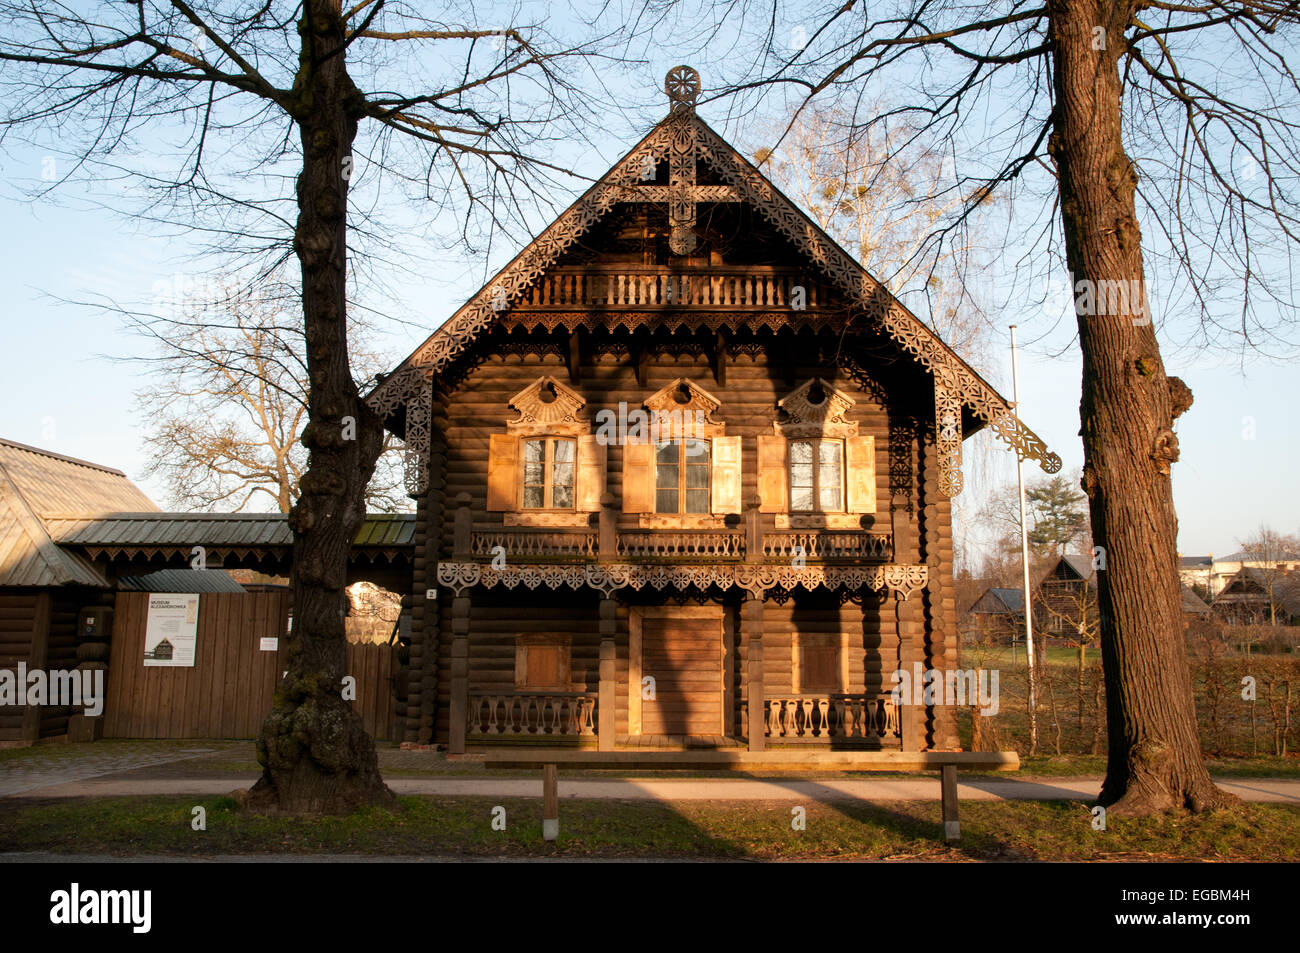 historic russian style dacha in alexandrowka russian colony in stock photo 78933249 alamy. Black Bedroom Furniture Sets. Home Design Ideas